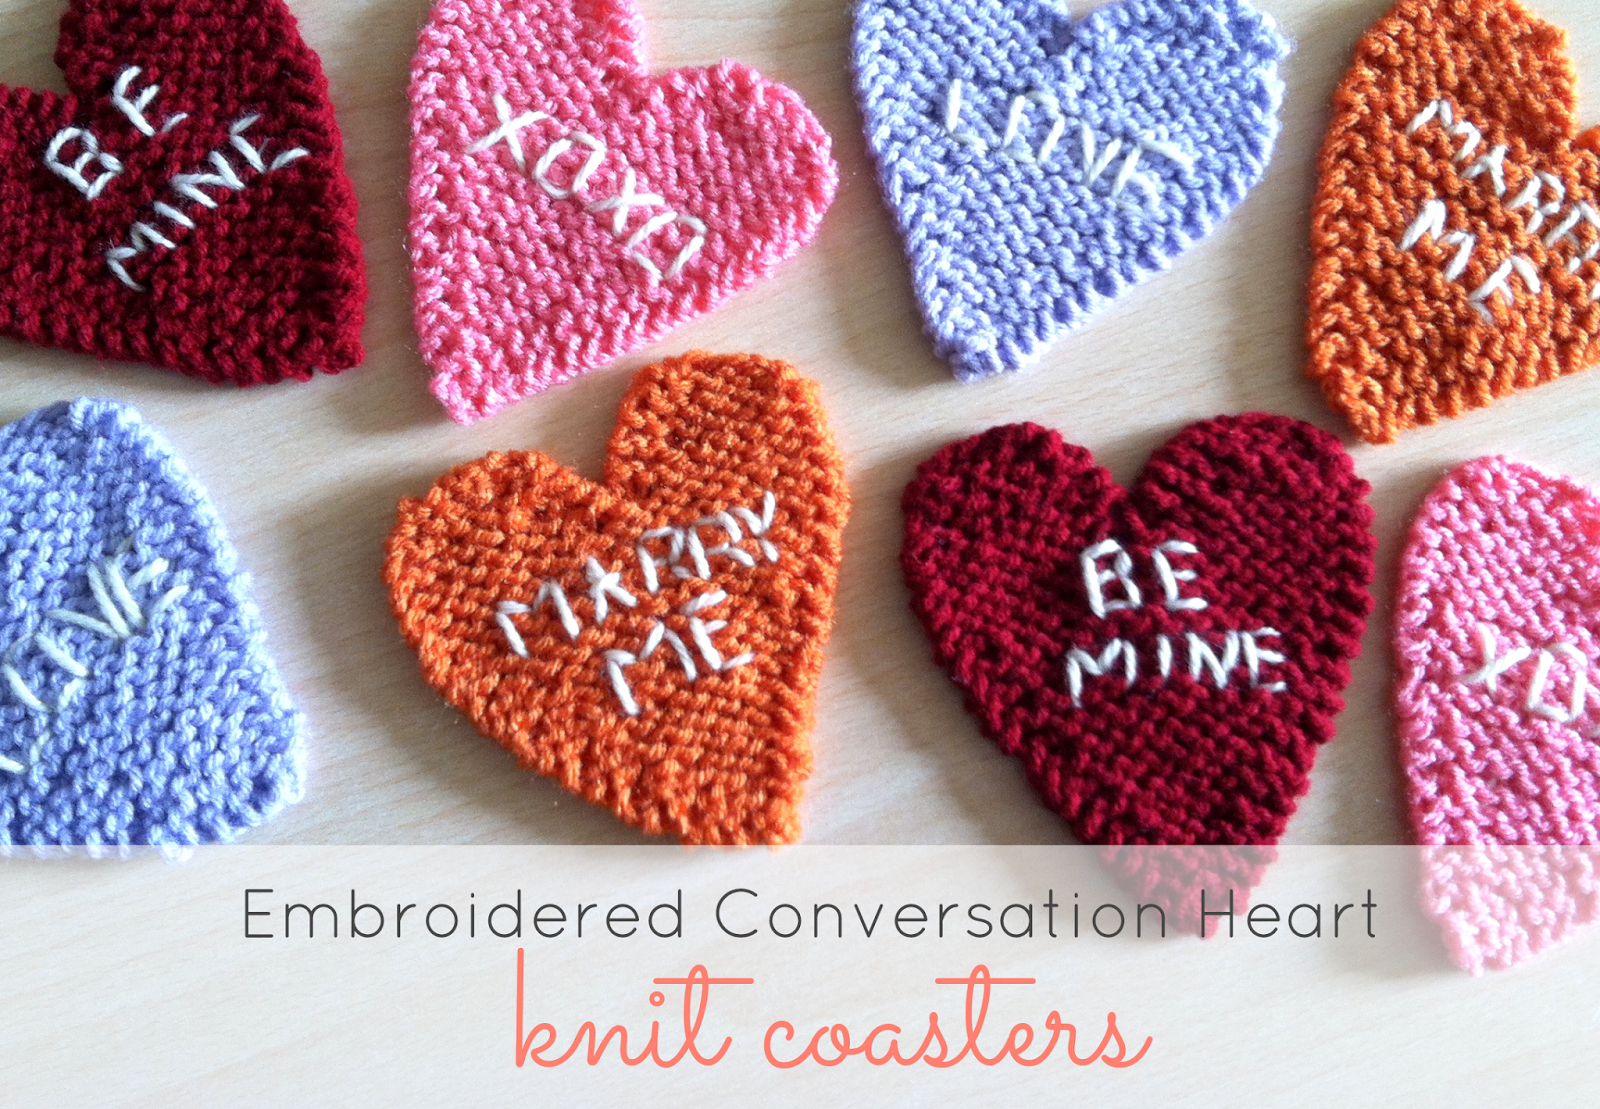 http://www.justbcrafty.com/2014/01/embroidered-conversation-heart-knit.html